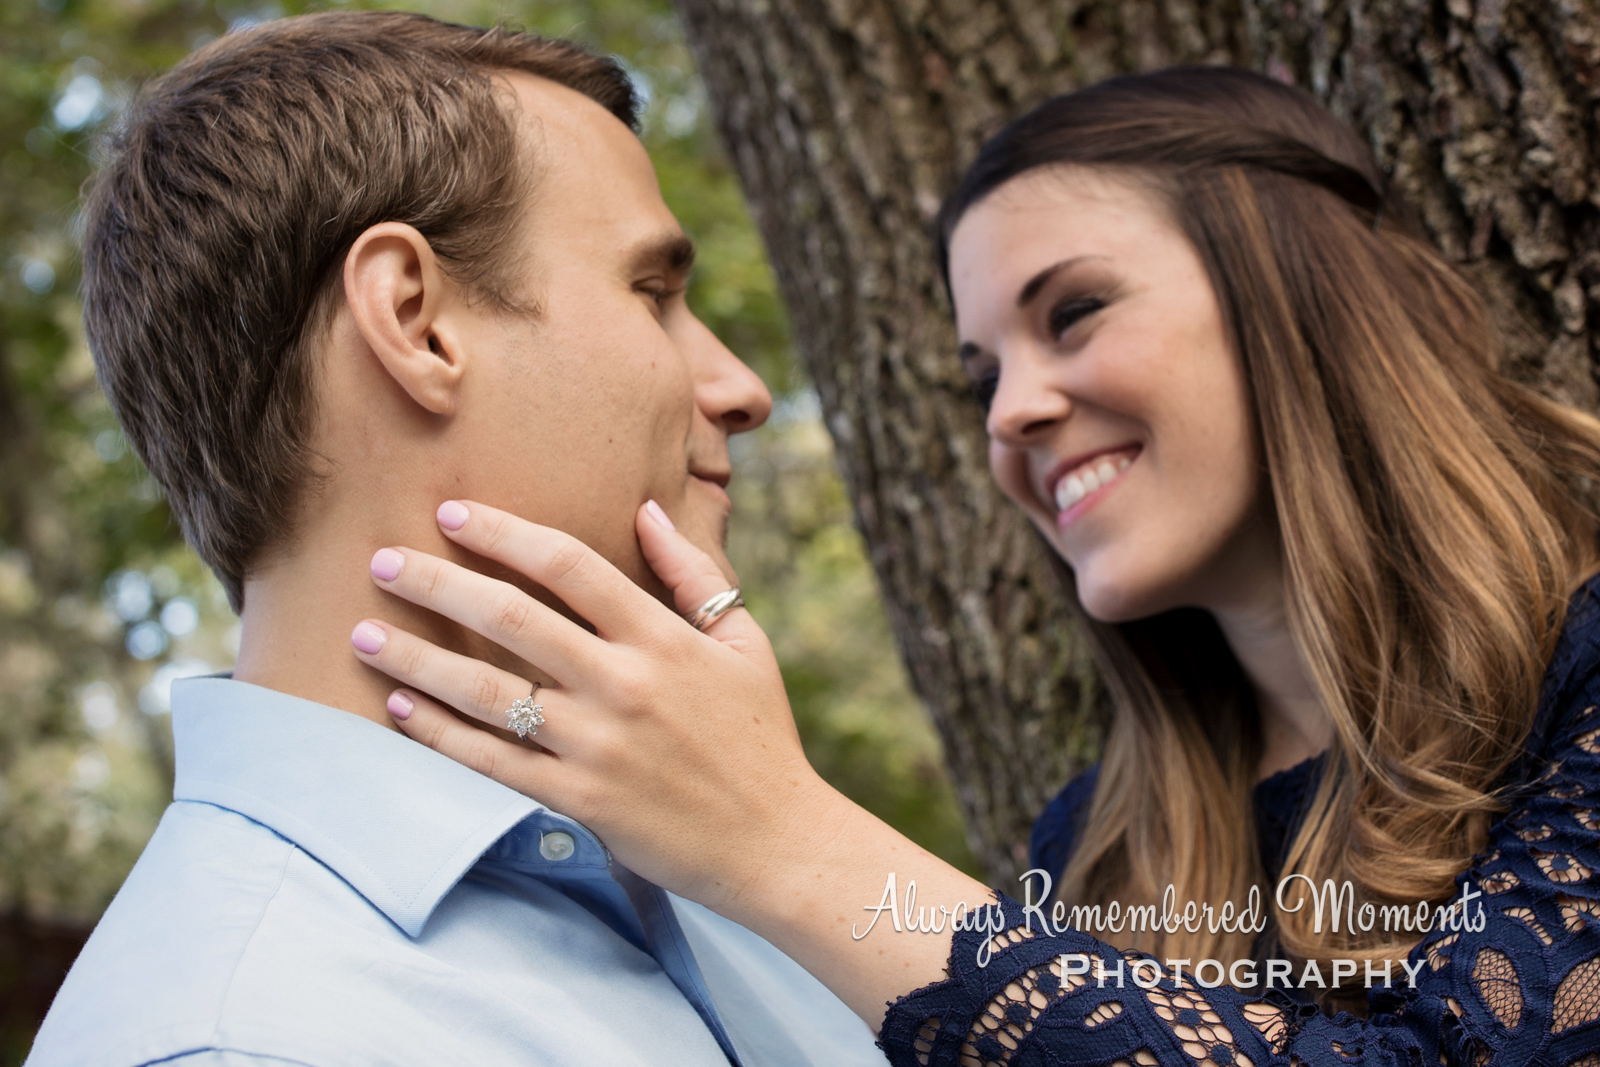 Always Remembered Moments Photography, Shannon & Adam, Engagement Session, Alpine Grove Park, St Joh